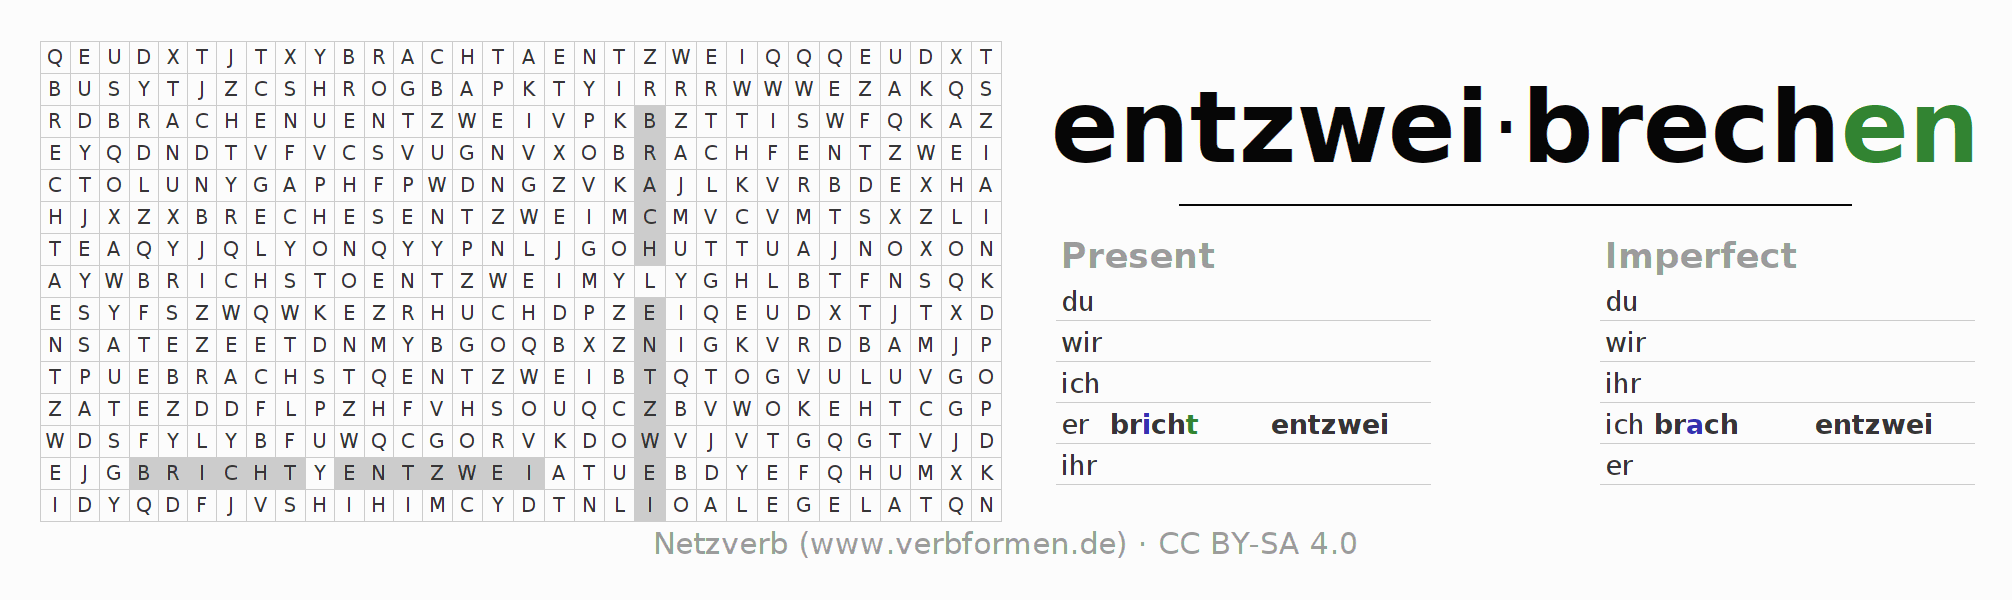 Word search puzzle for the conjugation of the verb entzweibrechen (ist)